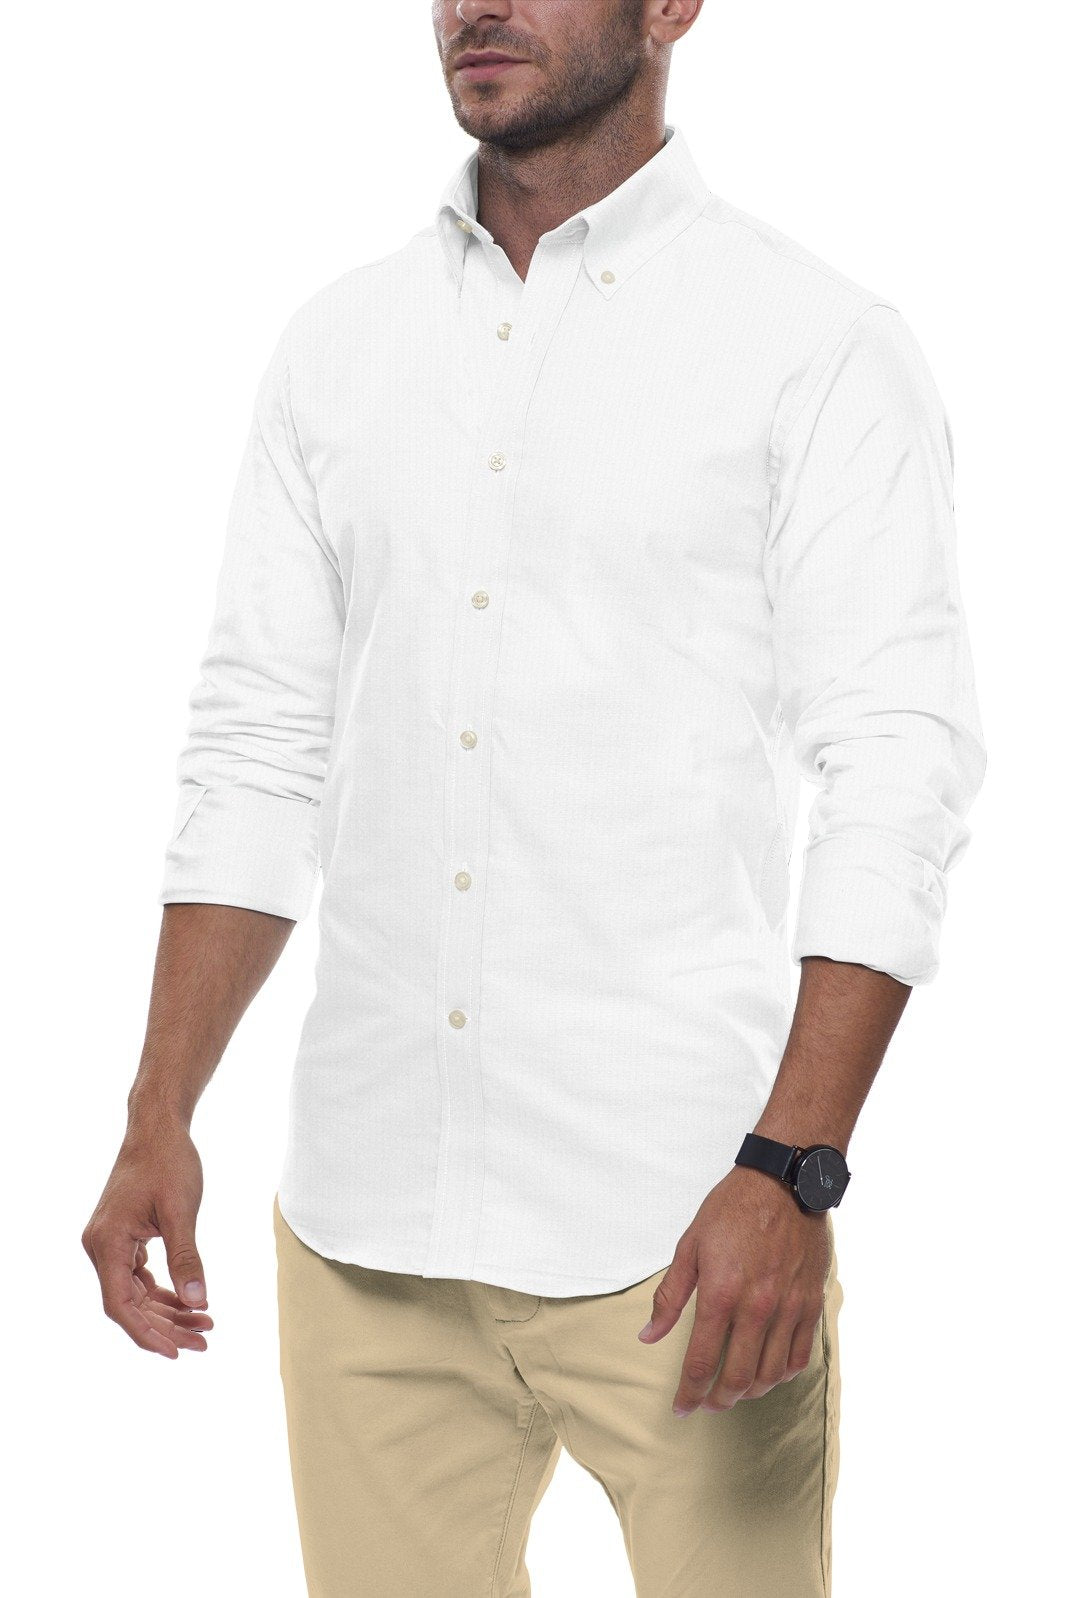 White Cotton Seersucker: Semi-Spread Collar, Long Sleeve